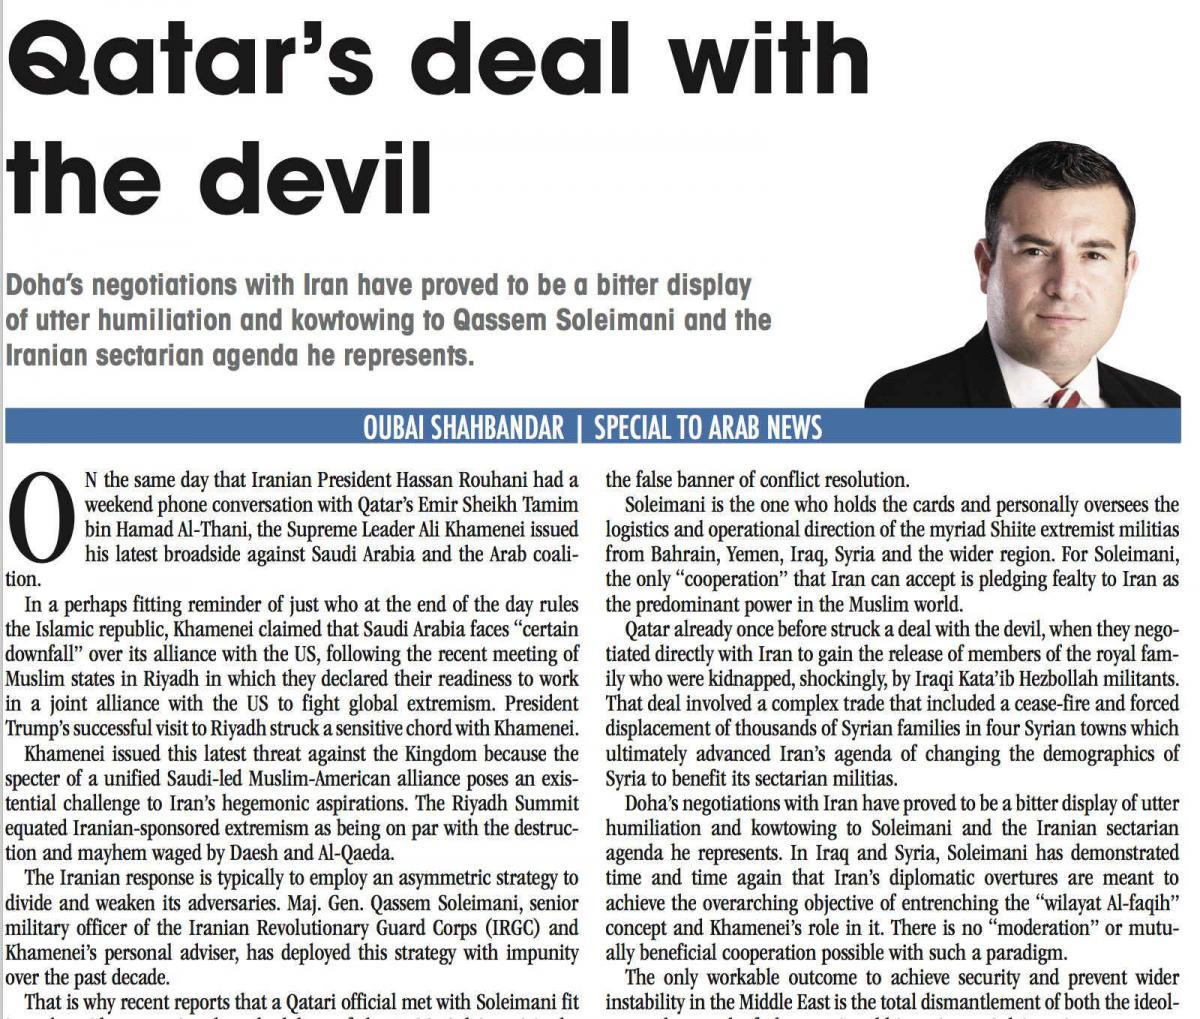 A view from the Saudi newspaper, Arab News